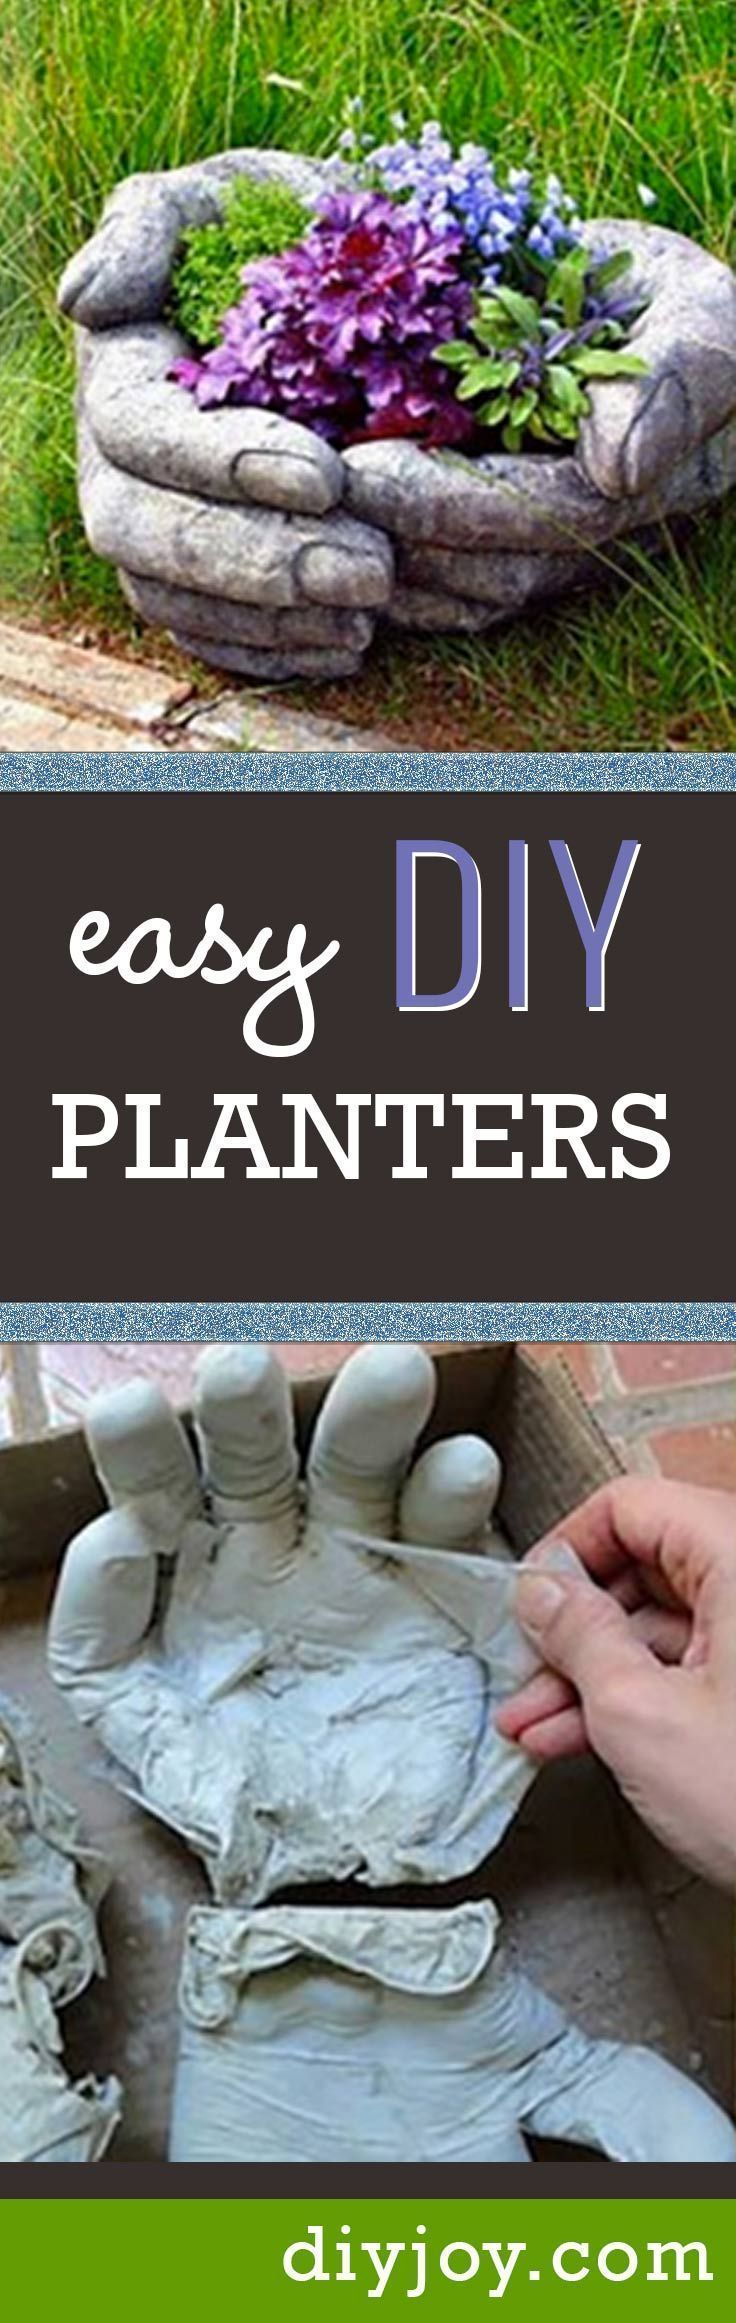 Easy DIY Planters for Cool Do It Yourself Gardening Idea - Concrete Pots In Hand Shade Are Super Creative Project                                                                                                                                                      More